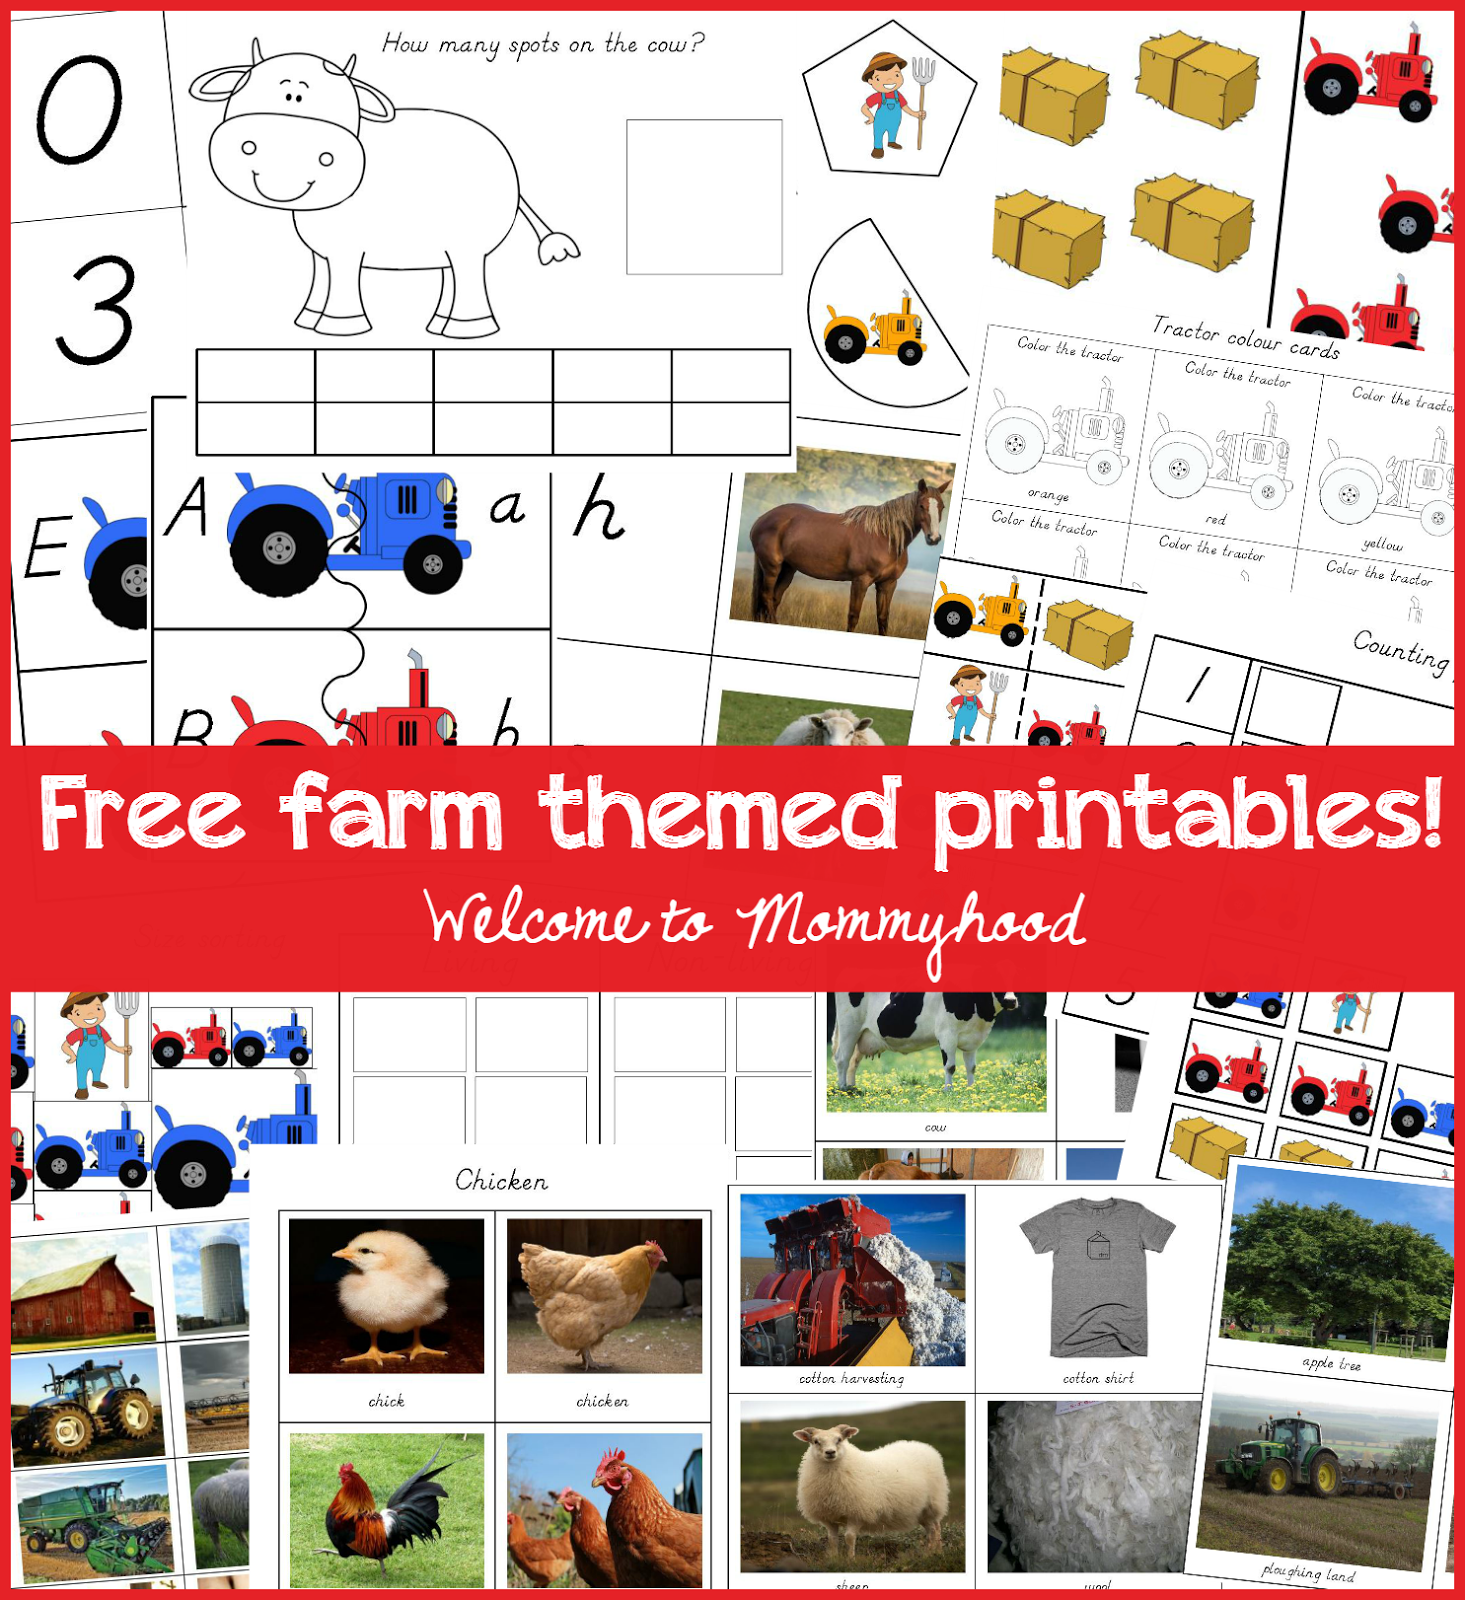 Free Farm Themed Printables For Preschoolers And Toddlers By Welcome To Mommyhood